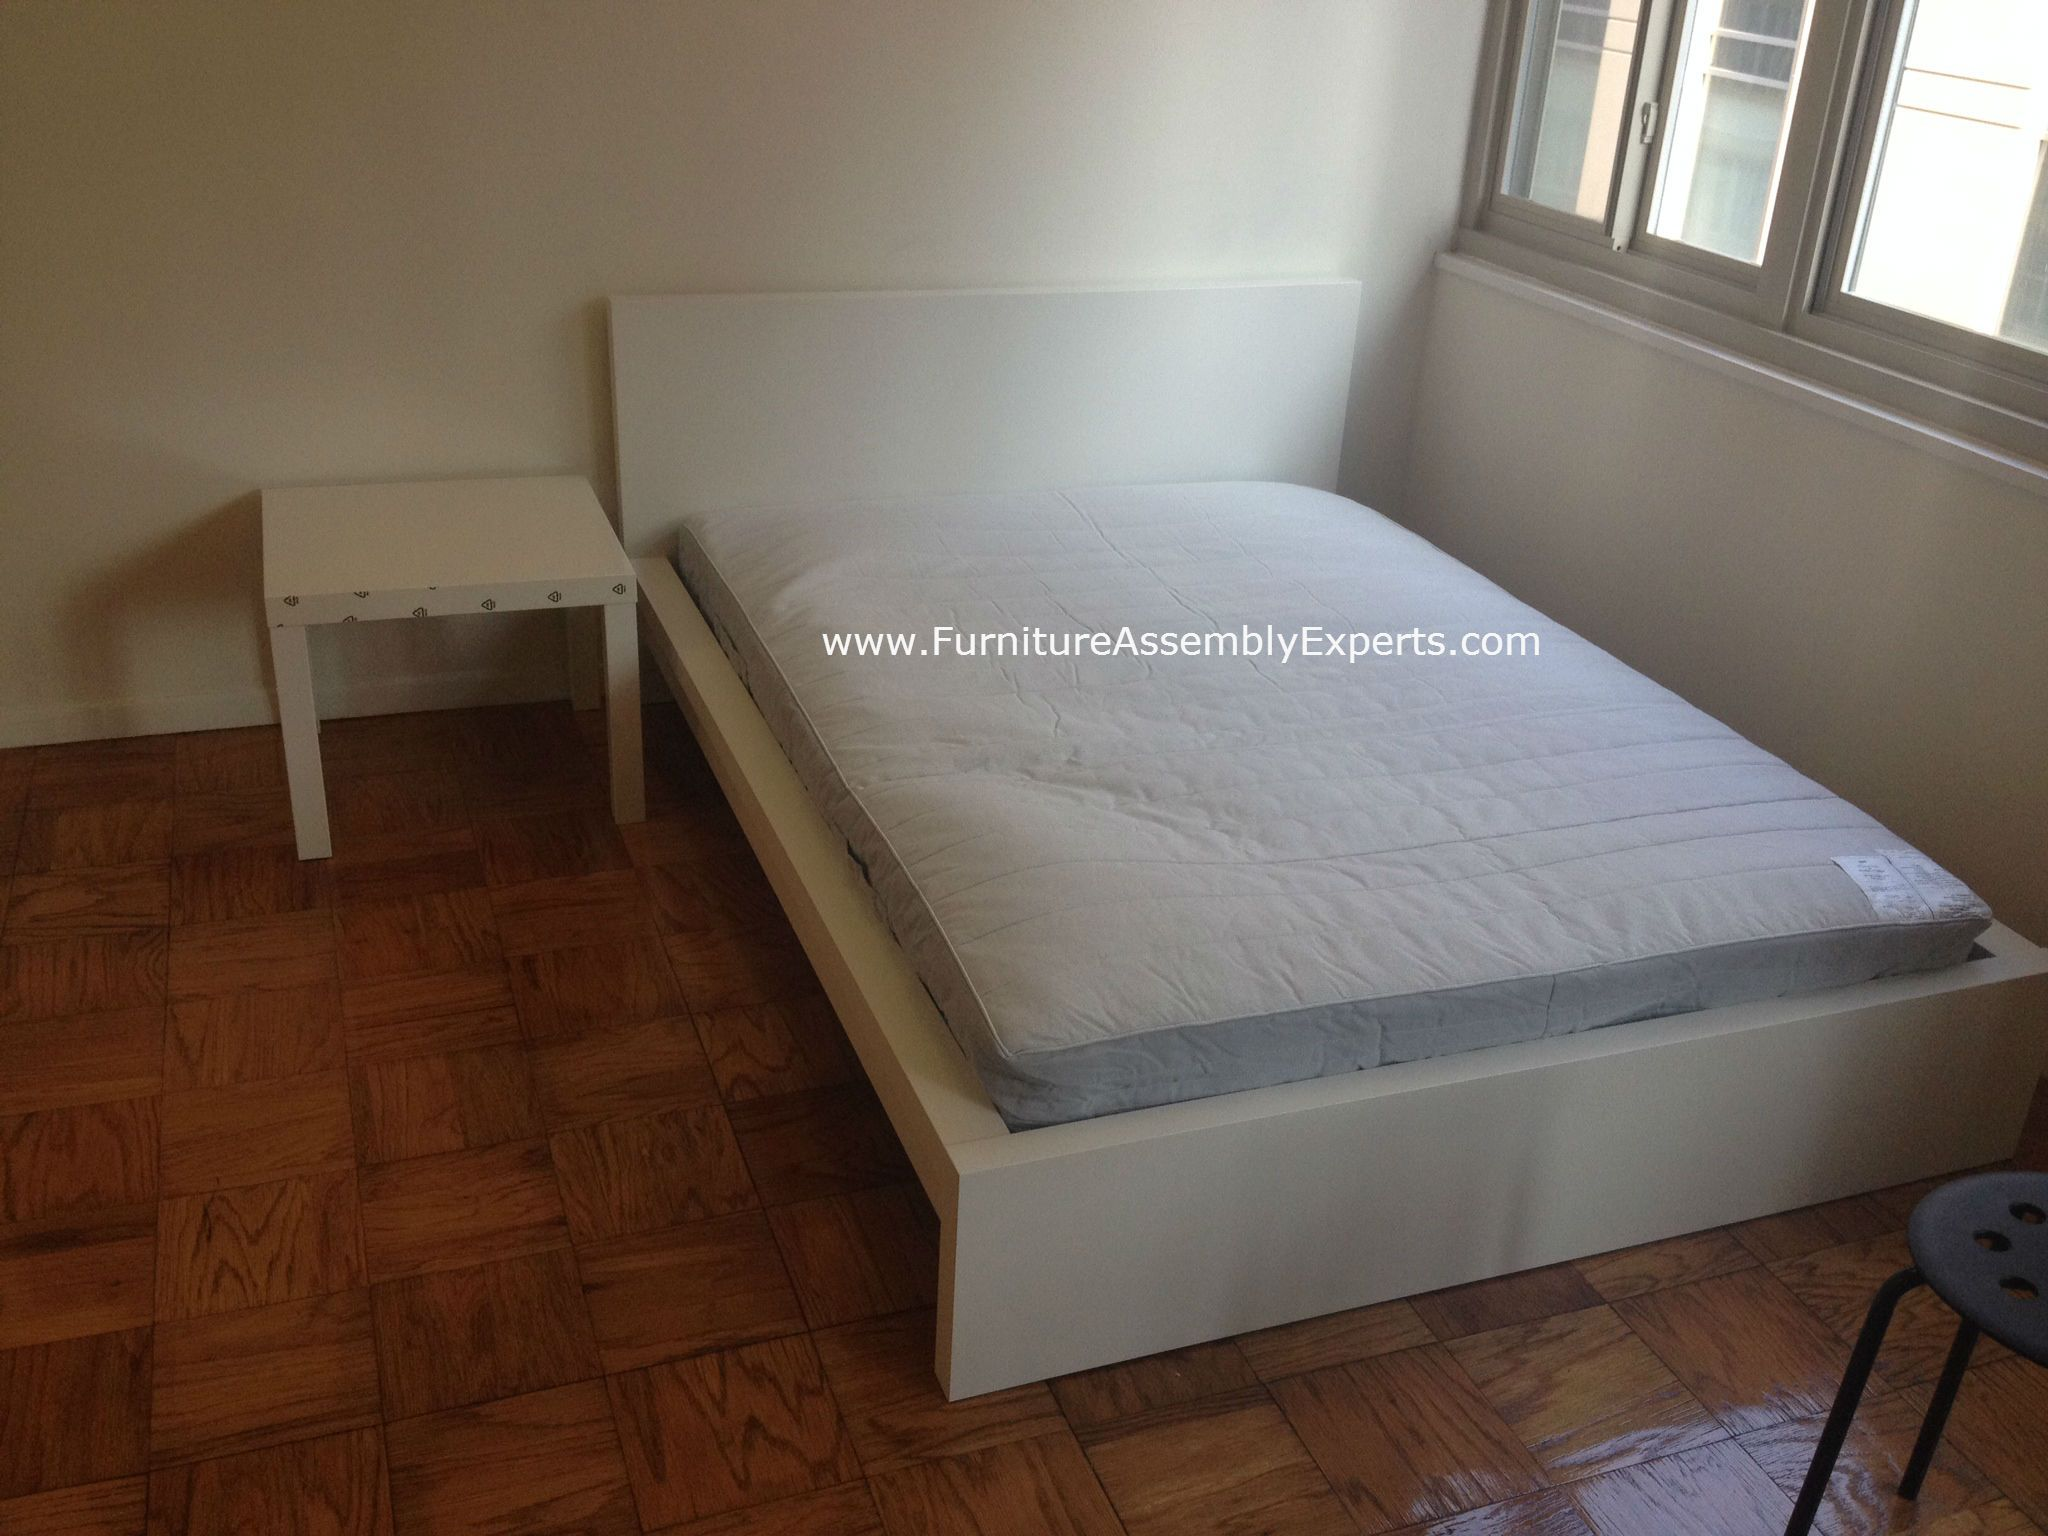 ikea malm bed and lack side table assembled in crofton md by